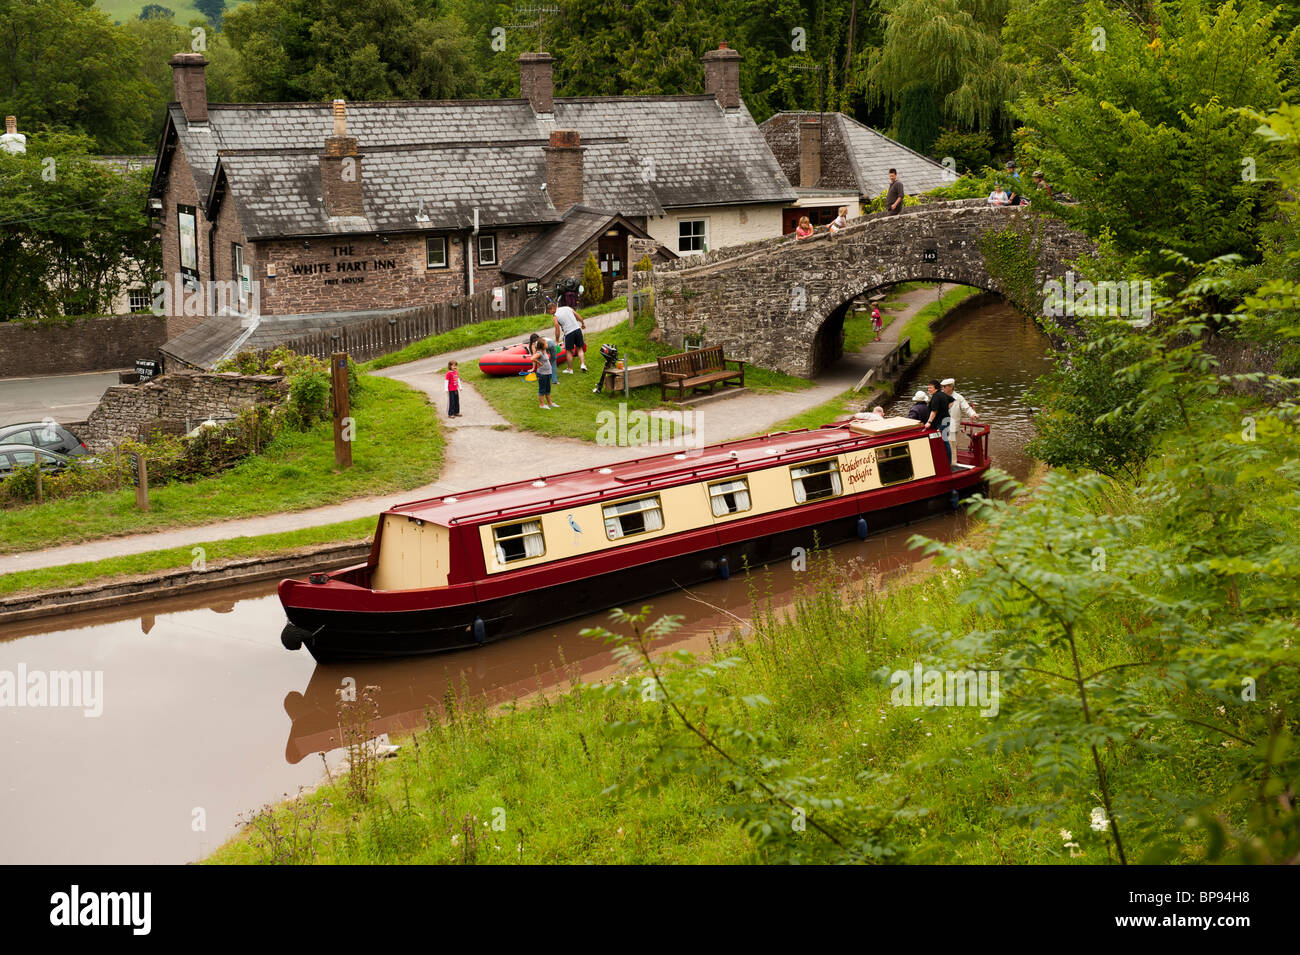 A narrowboat on the Monmouthshire and Brecon Canal by the White Hart Inn Talybont on Usk, South Wales UK - Stock Image